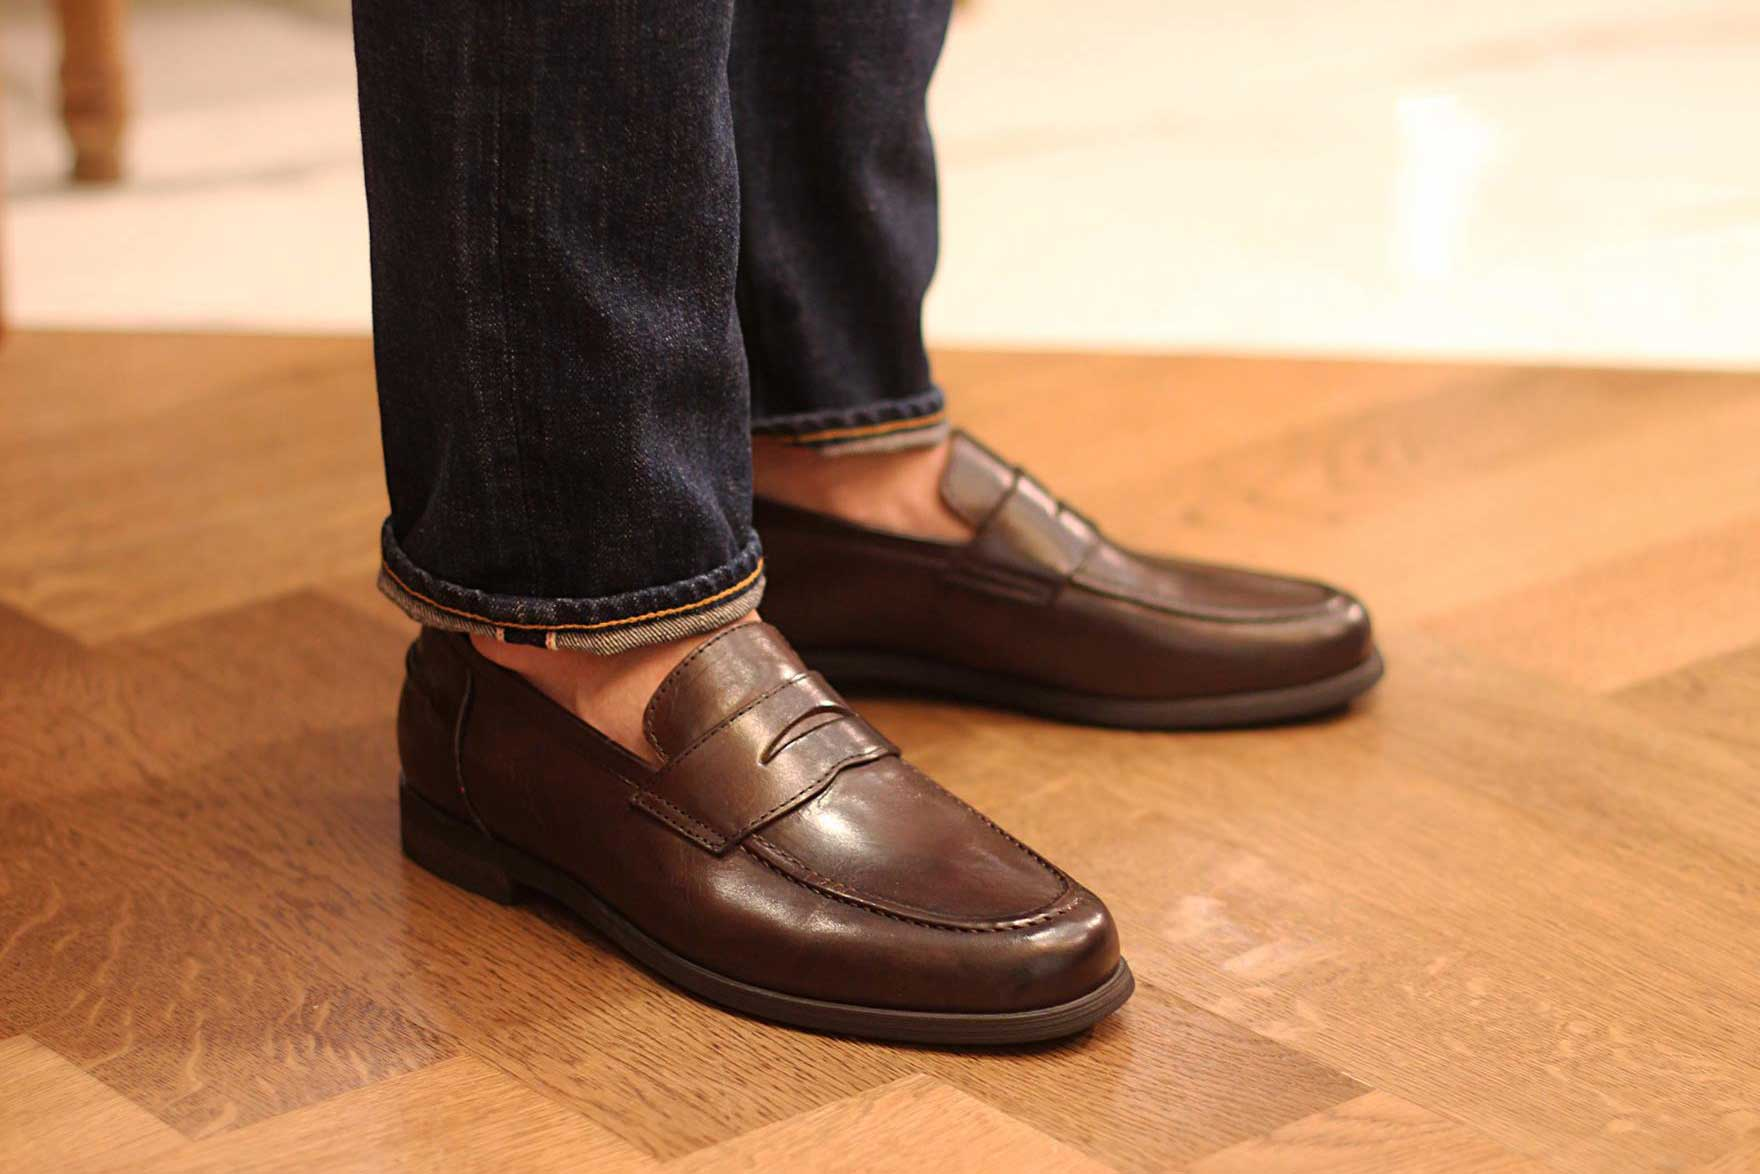 RAD by RAUDi Penny Loafers 樂福鞋 Brown